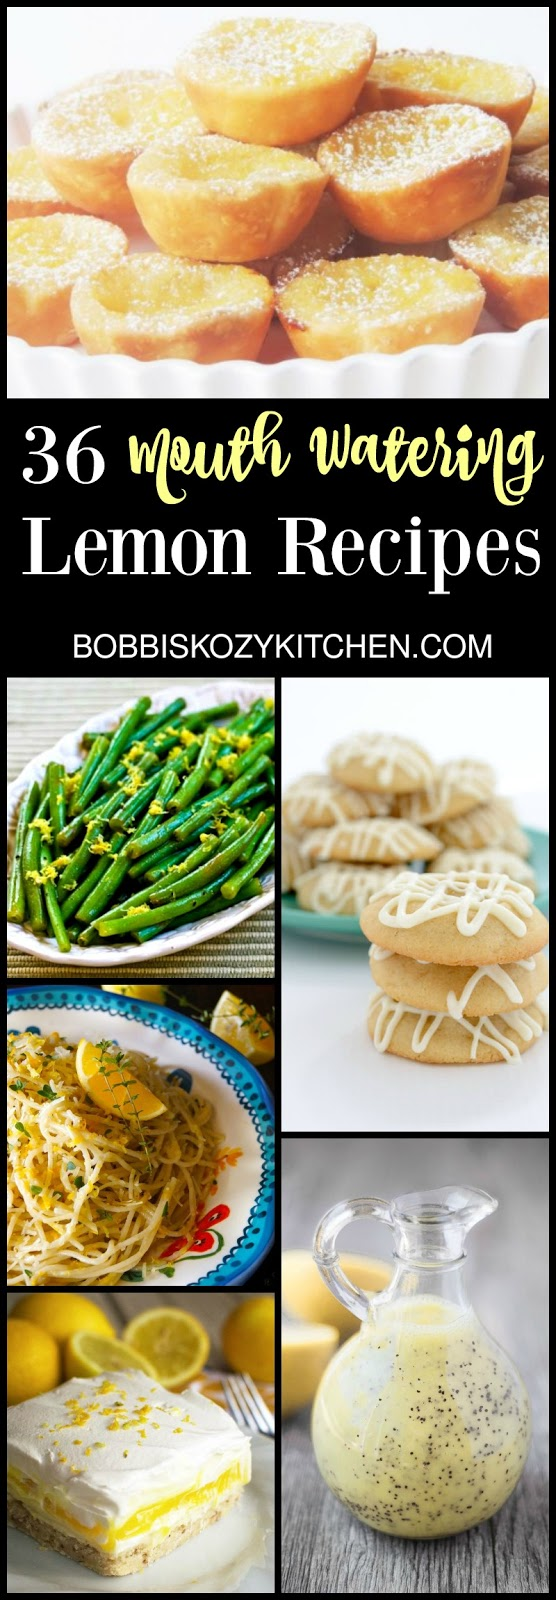 36 Mouth Watering Lemon Recipes from www.bobbiskozykitchen.com